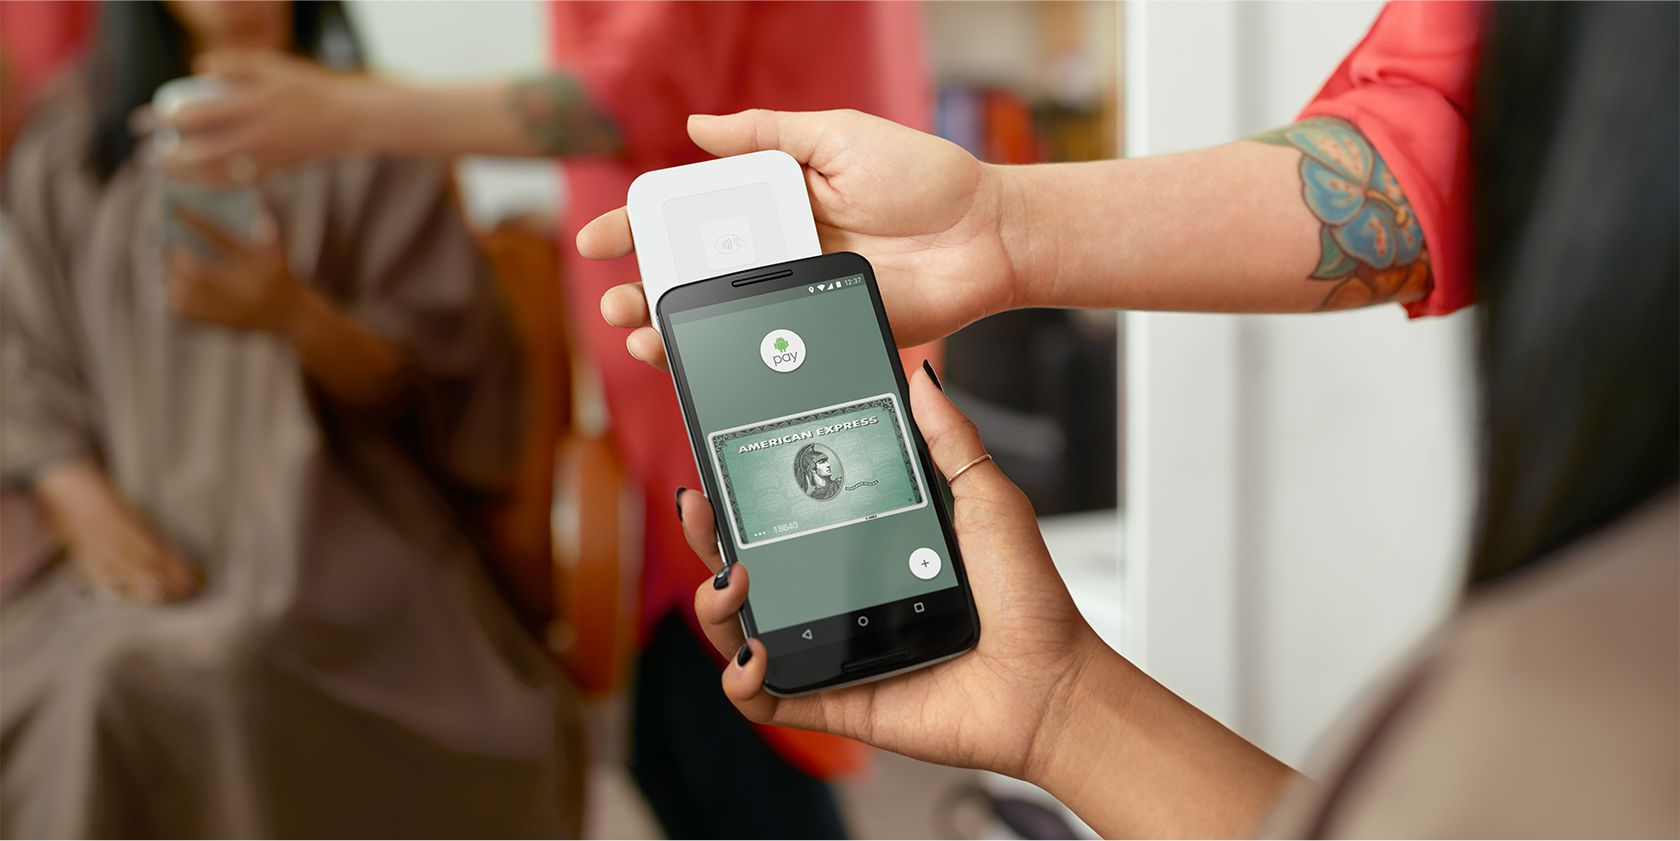 Android Pay (pictured) is another type of mobile NFC payment